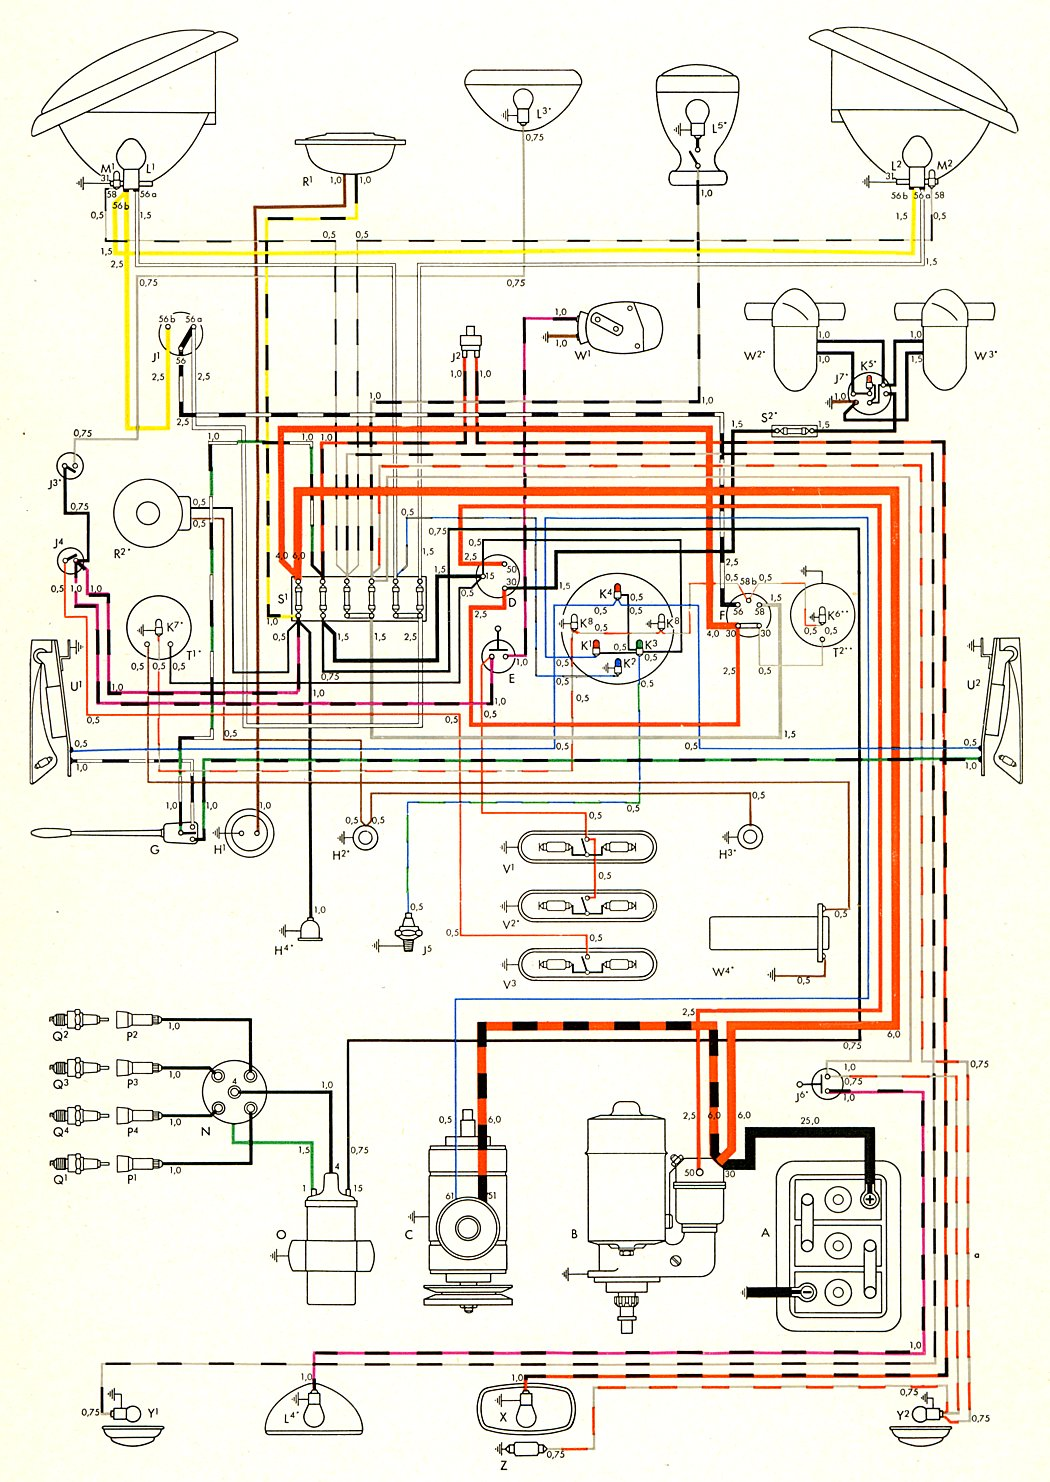 bus_nov57 1957 bus wiring diagram thegoldenbug com Volkswagen Type 2 Wiring Harness at crackthecode.co